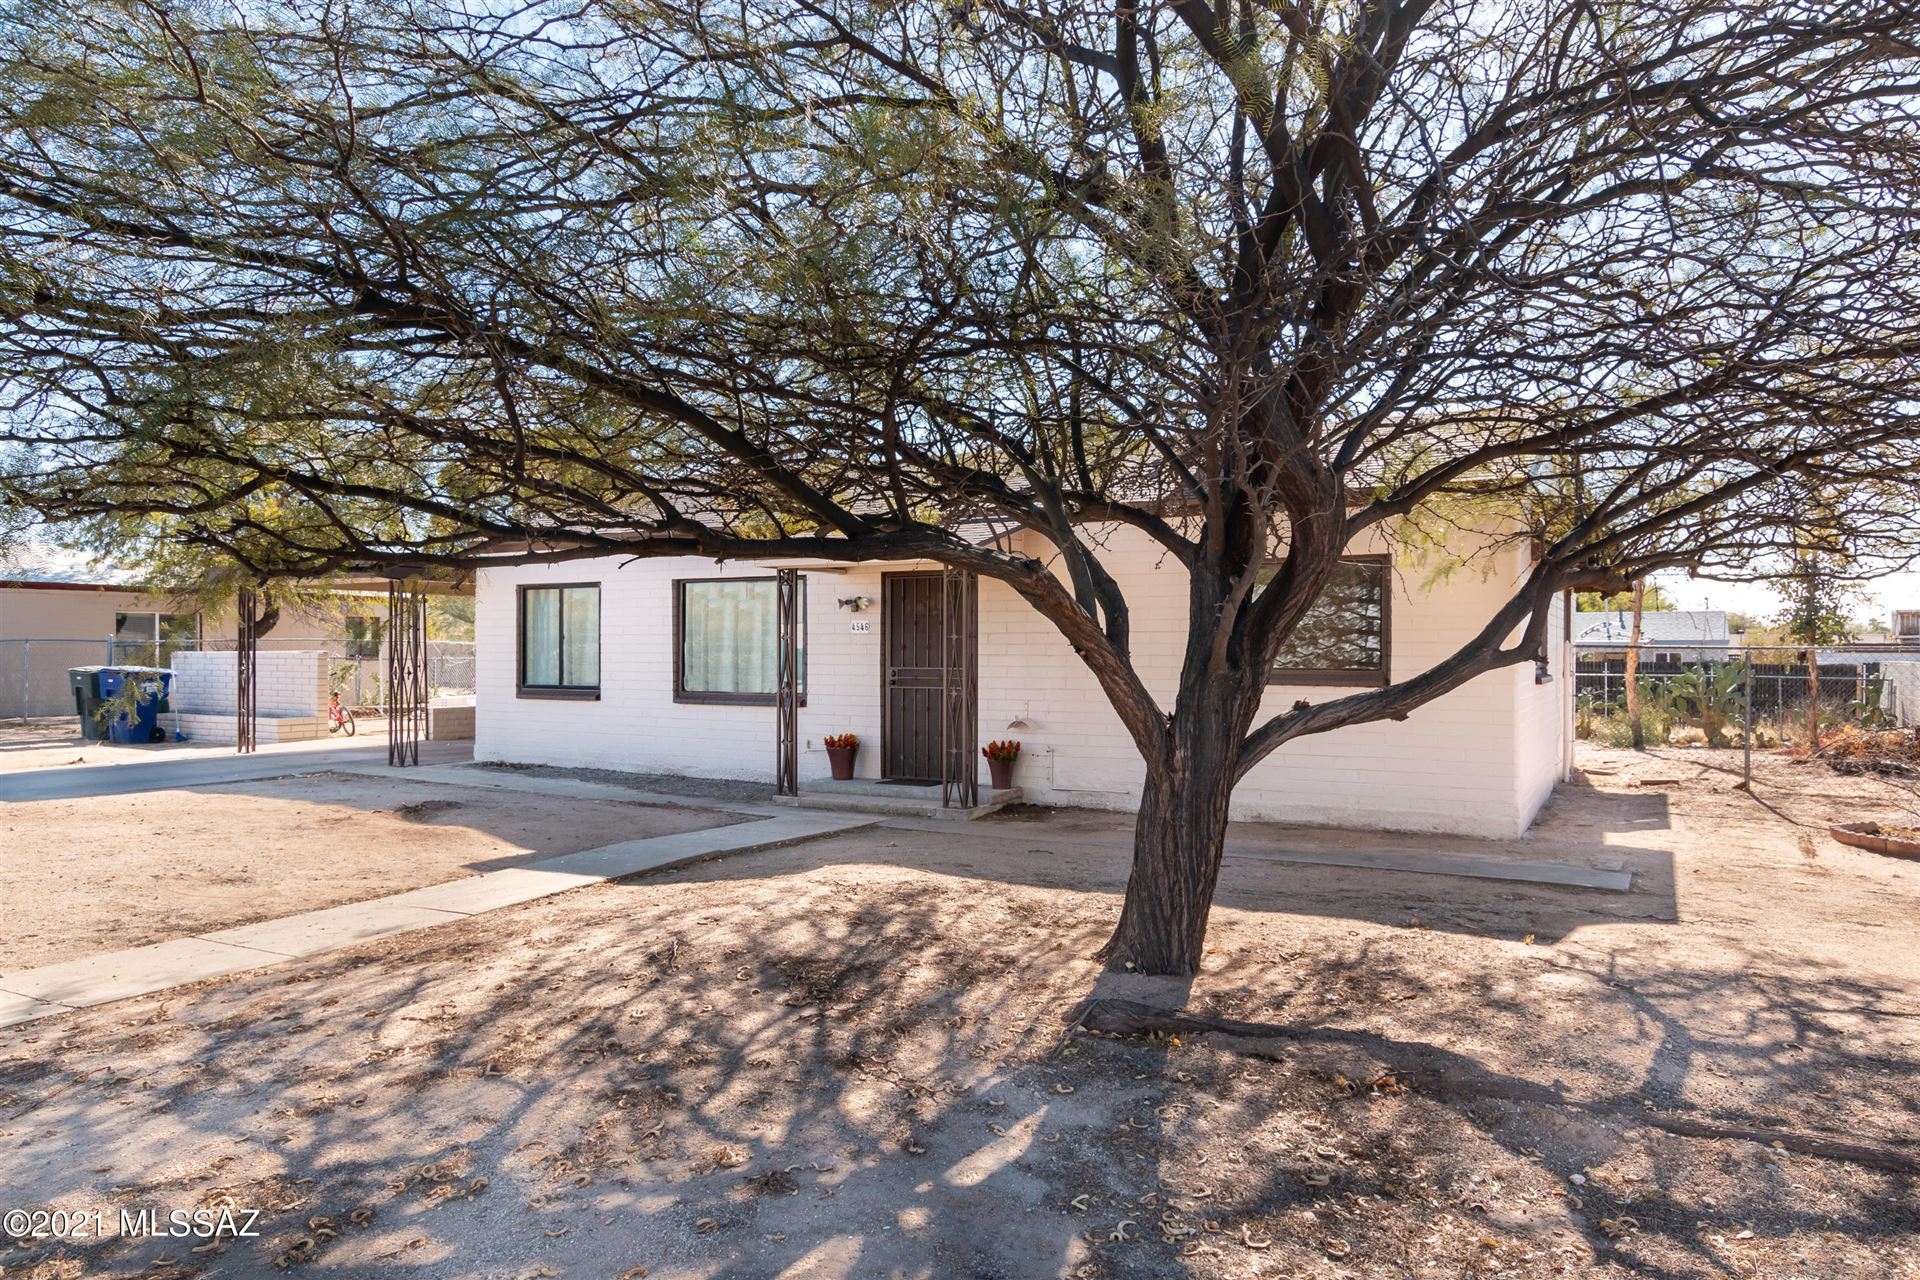 4546 E 13th Street, Tucson, AZ 85711 - MLS#: 22100603